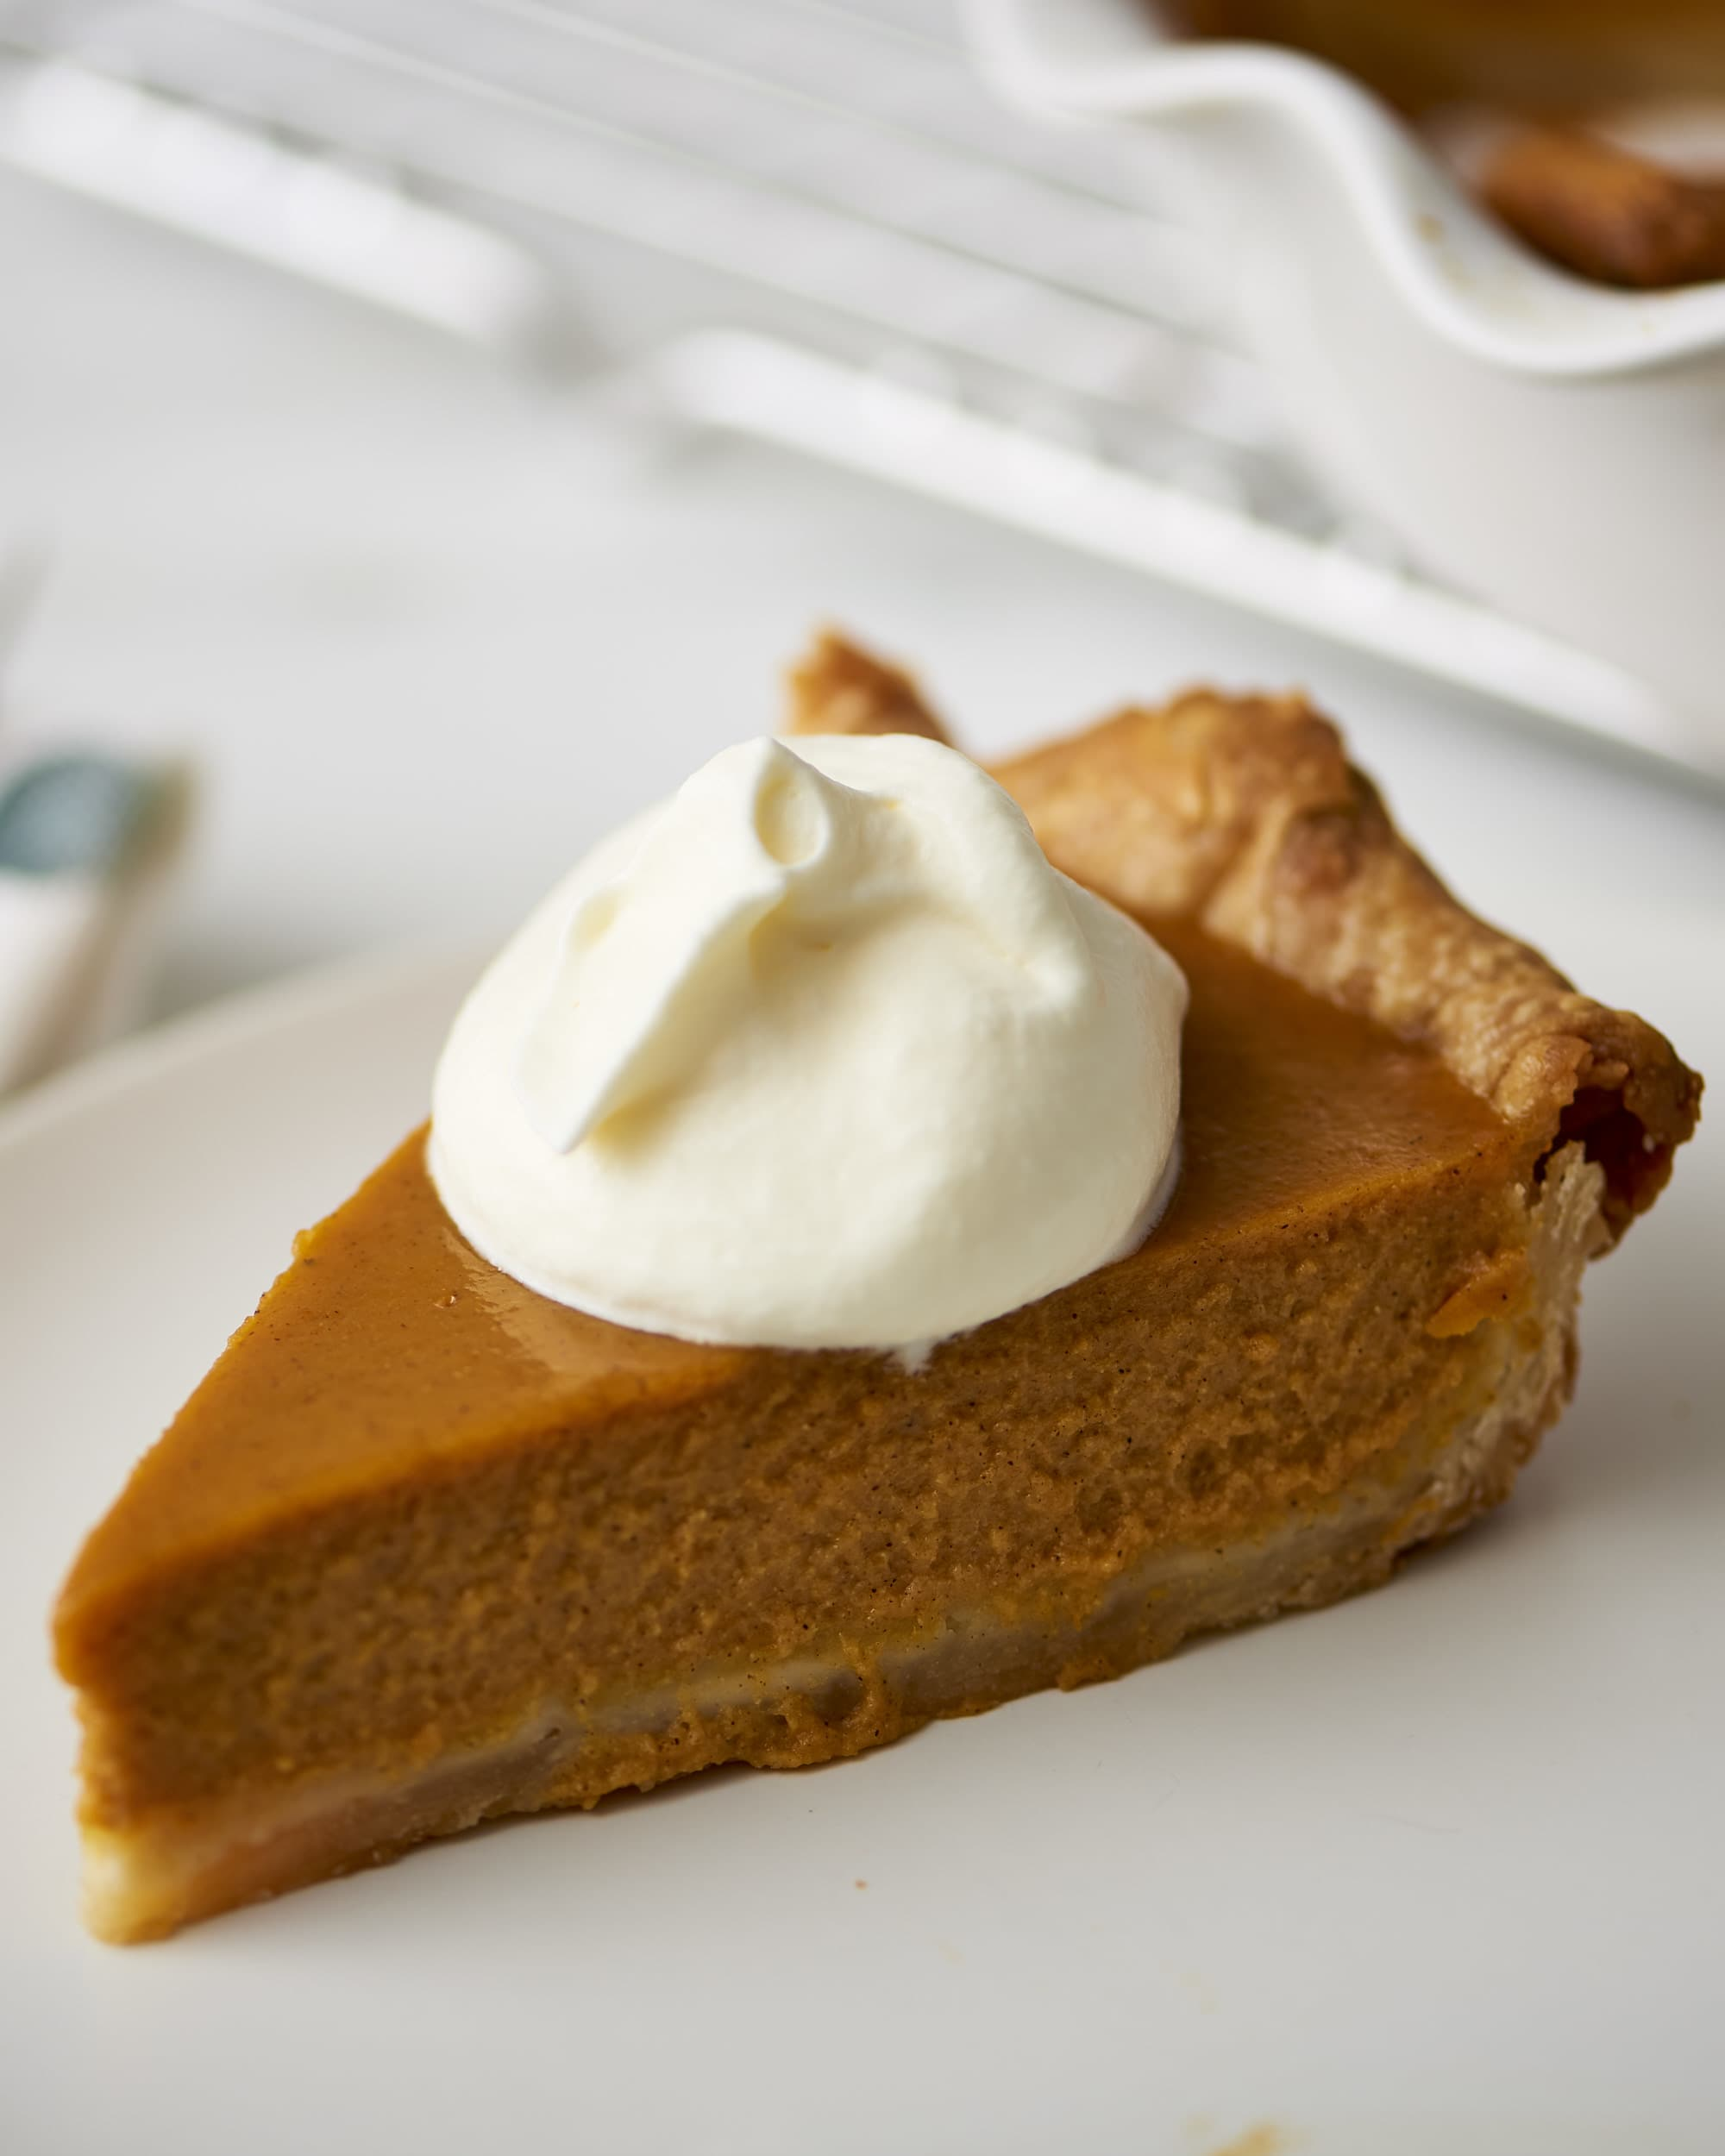 Pumpkin Pie Recipe - How To Bake Pumpkin Pie